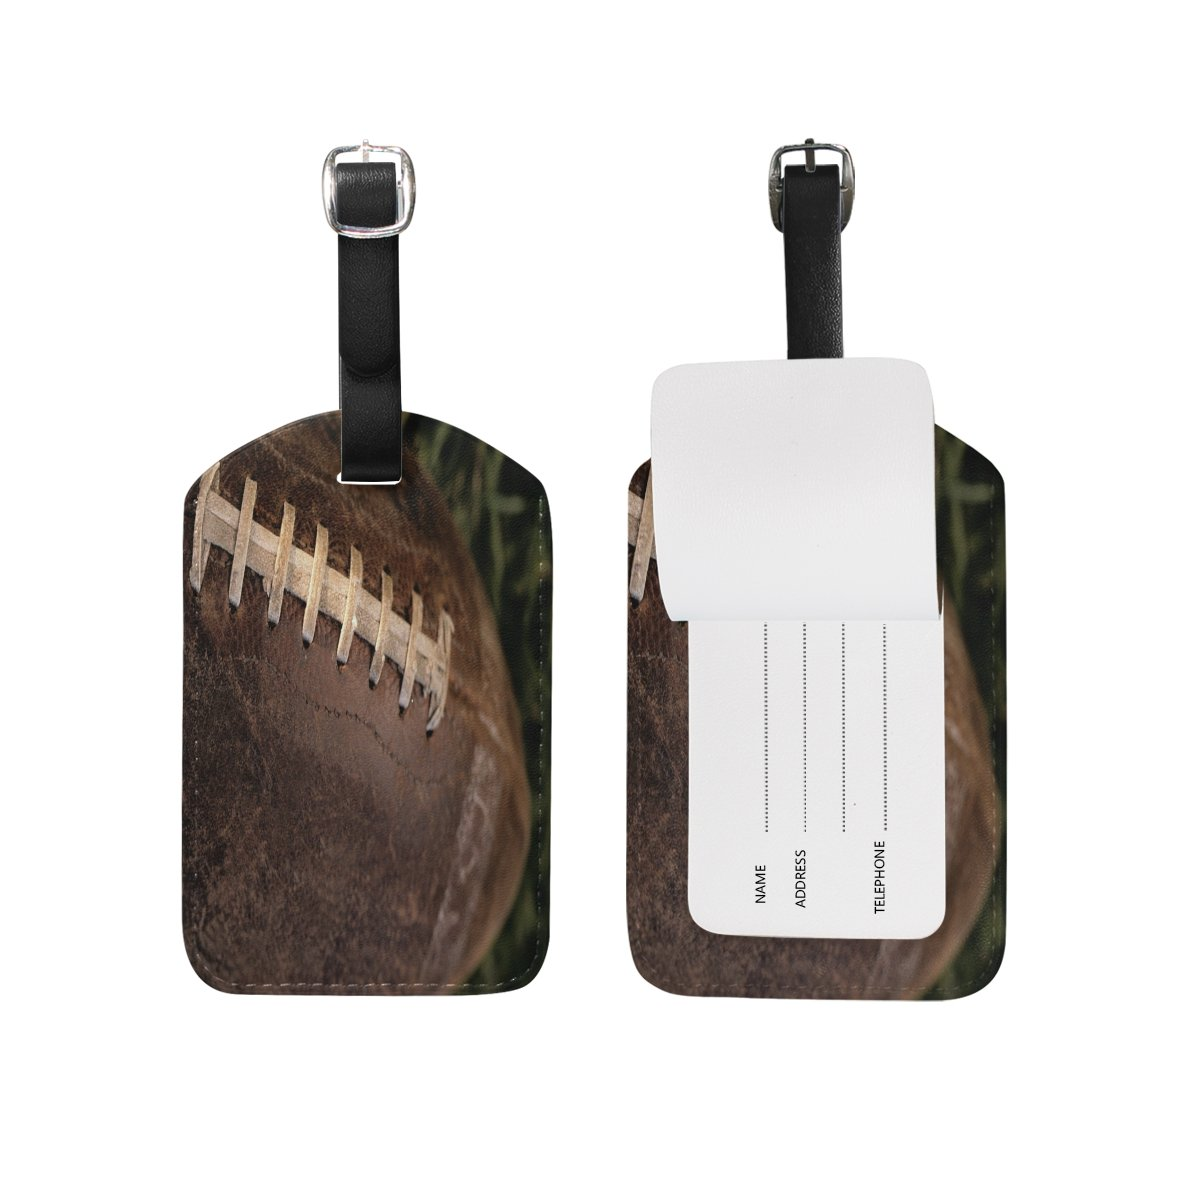 Brown Rugby Leather Travel Tour Luggage Handbag Tags Card Labels (2pcs)